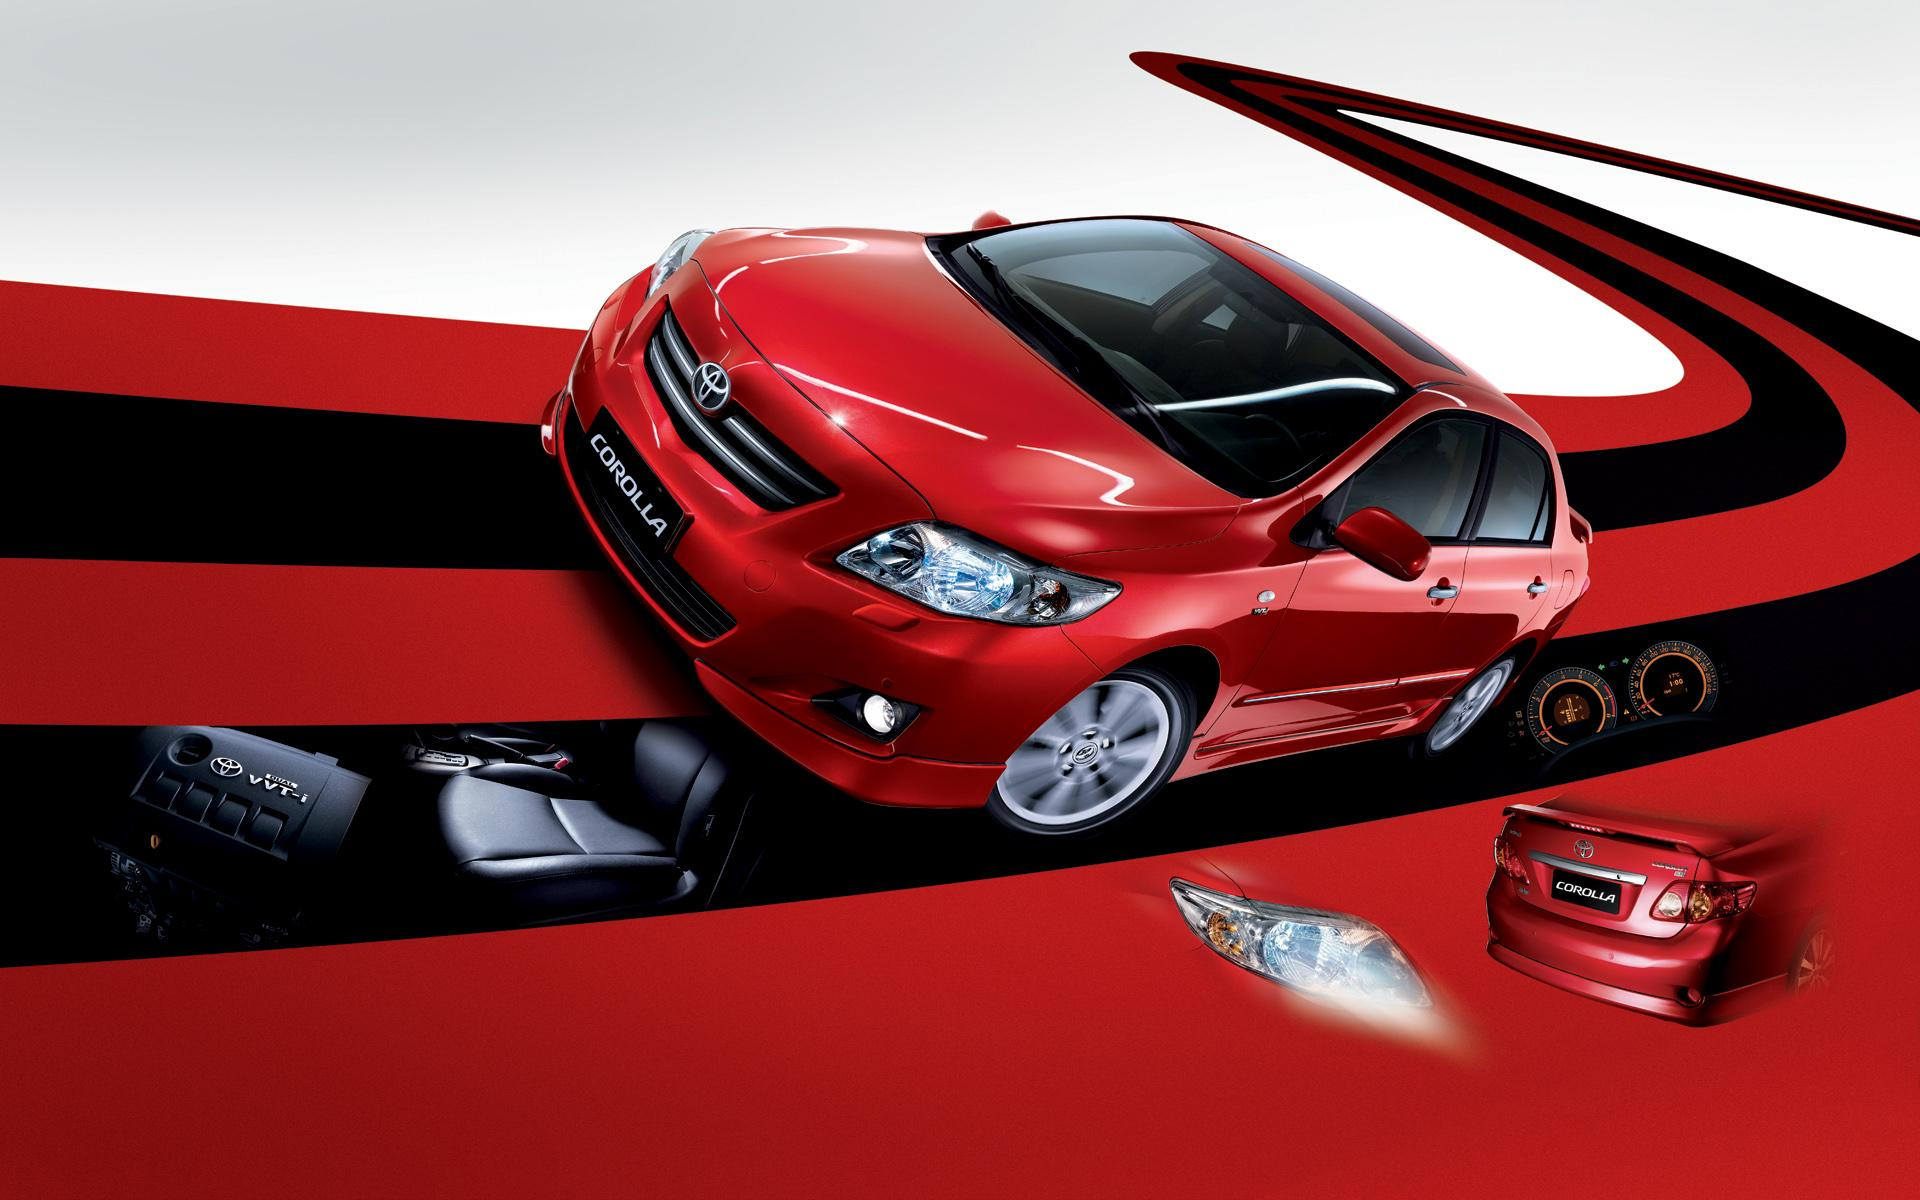 Toyota Corolla Mpg >> Over 40 HD Stunning Toyota Wallpaper Images For Free Download